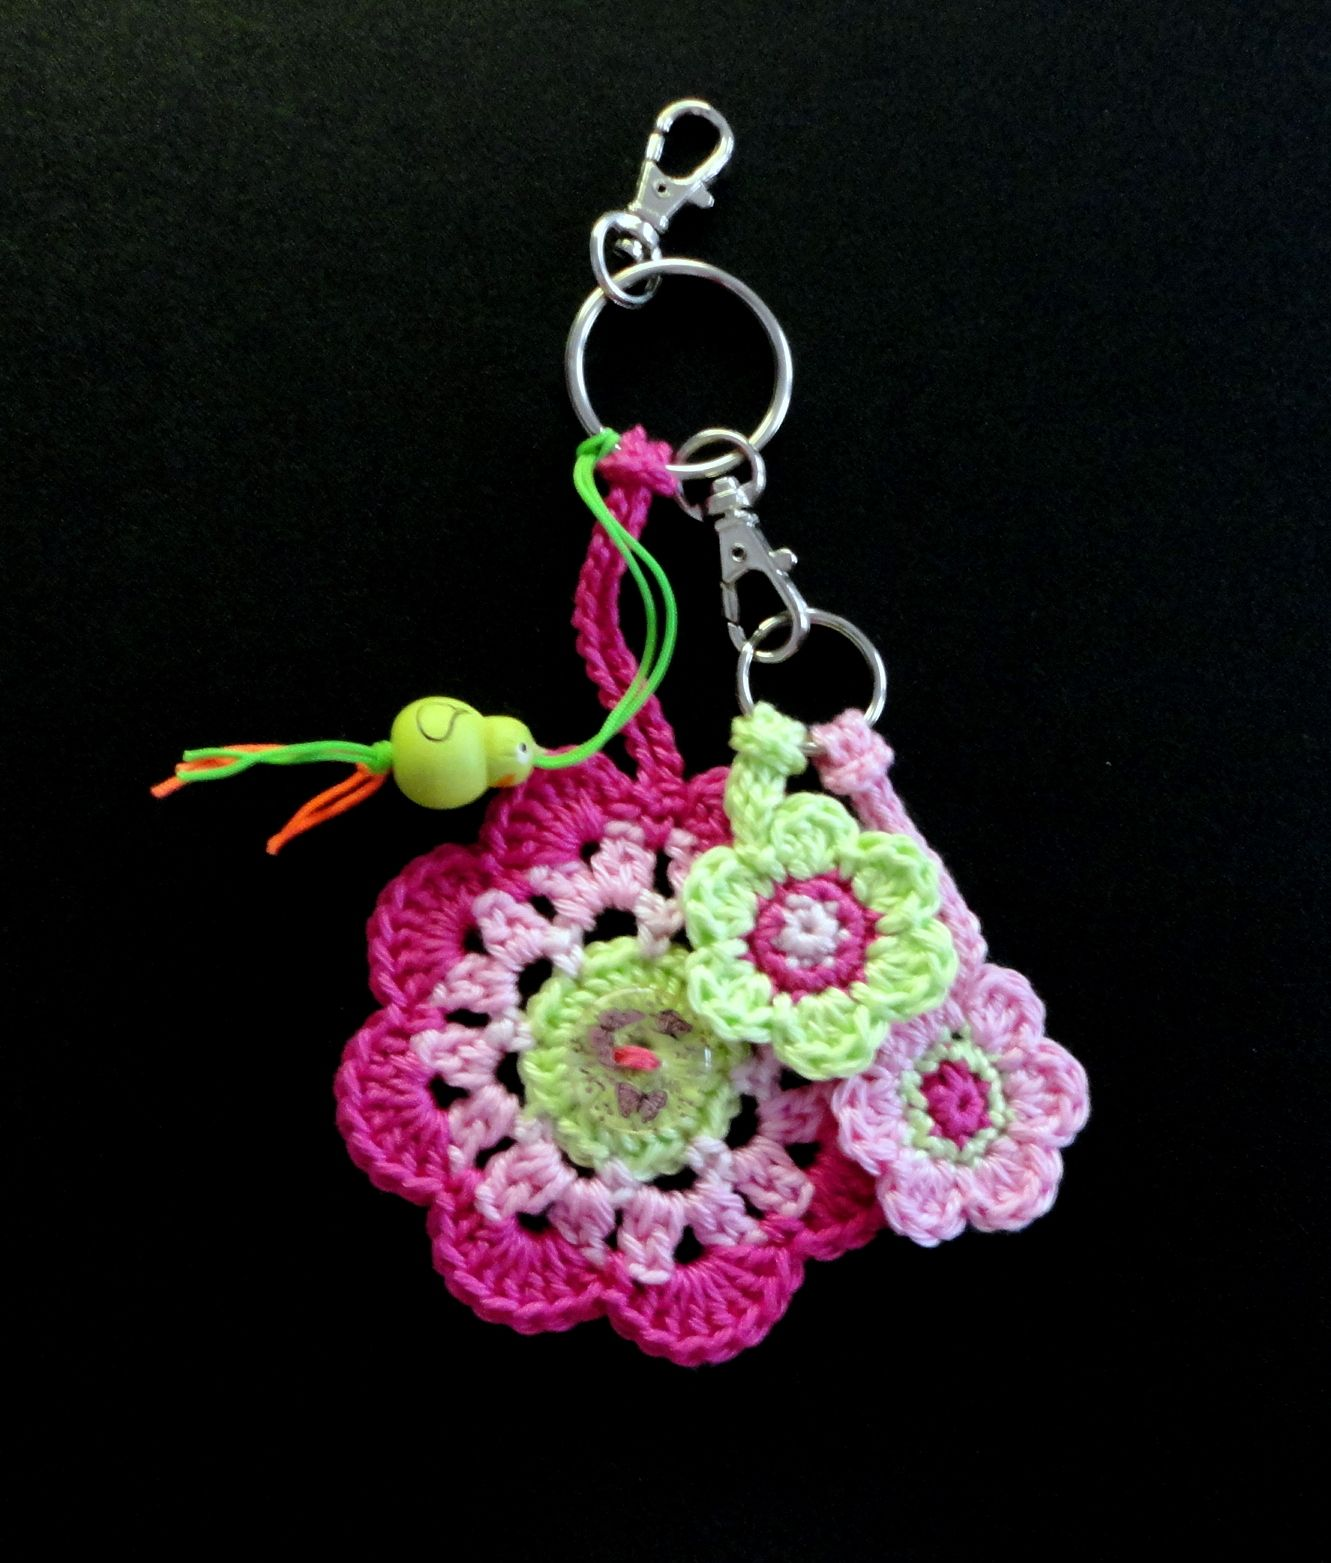 Crochet Patterns Keychain : ... Crochet Keychain on Pinterest Amigurumi, Crocheting and Crochet